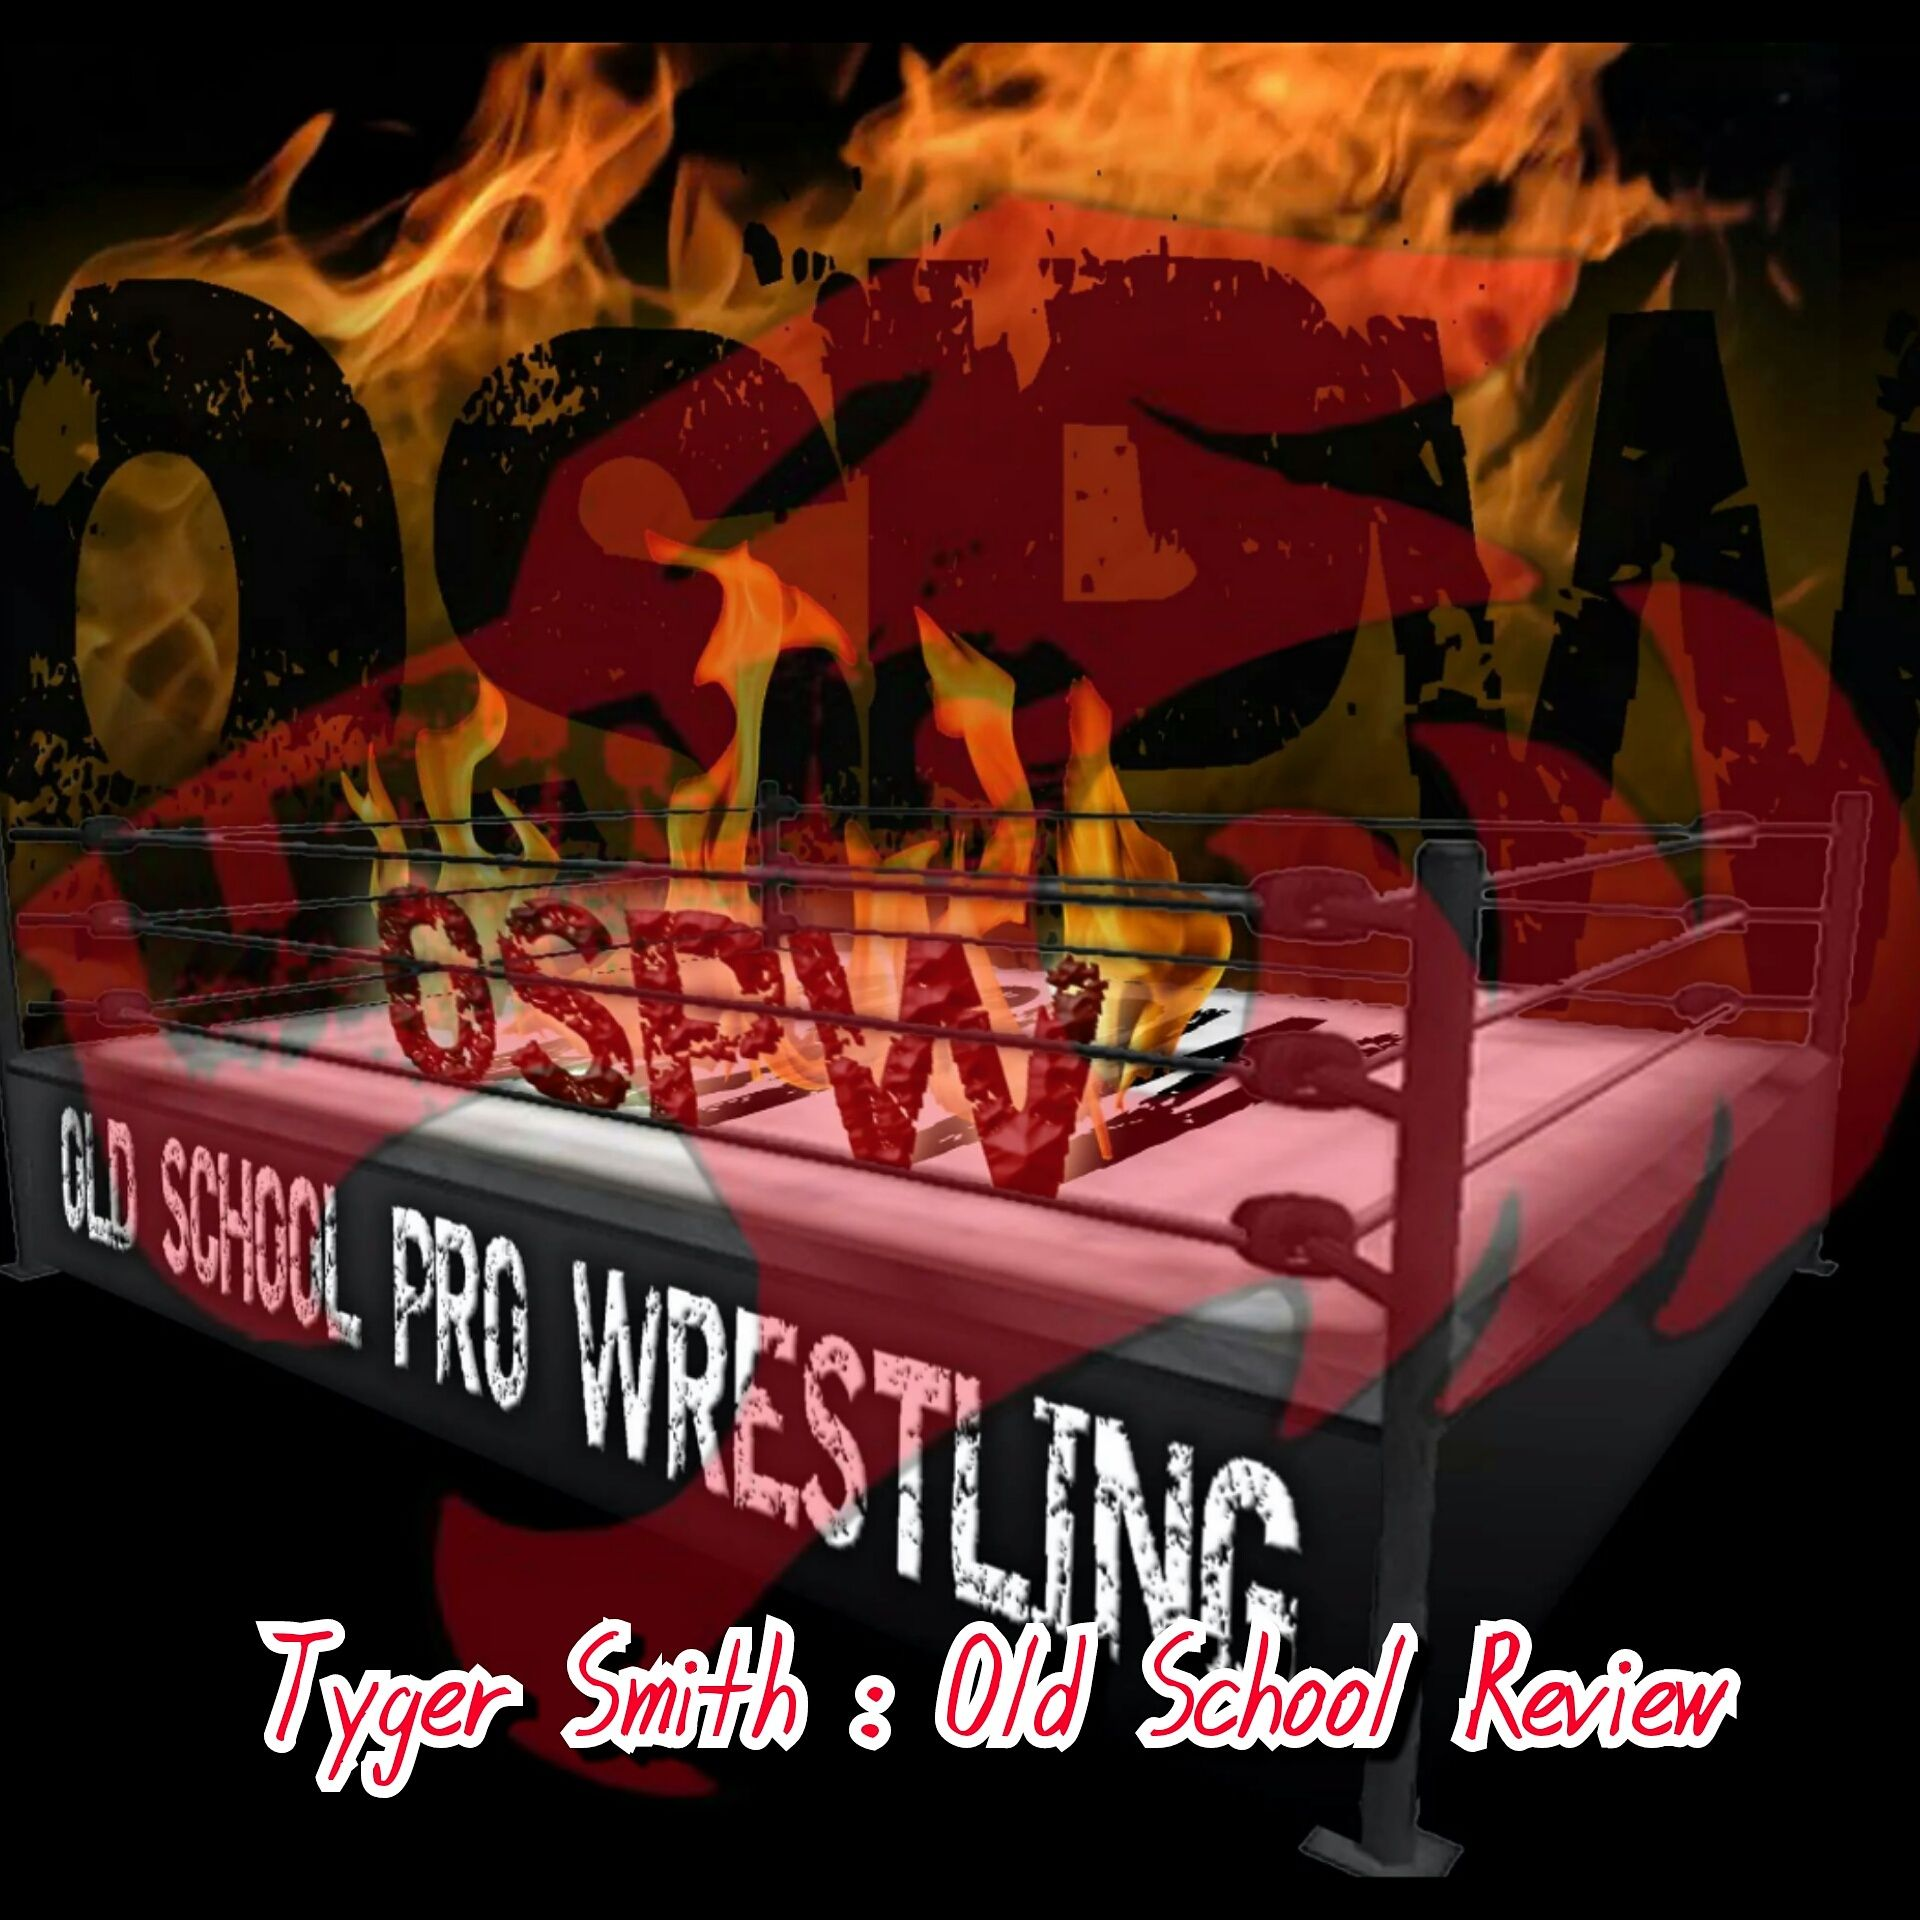 the new @ospwreview podcast debuting this Monday! with everything happening @officialospw #exodus will be something